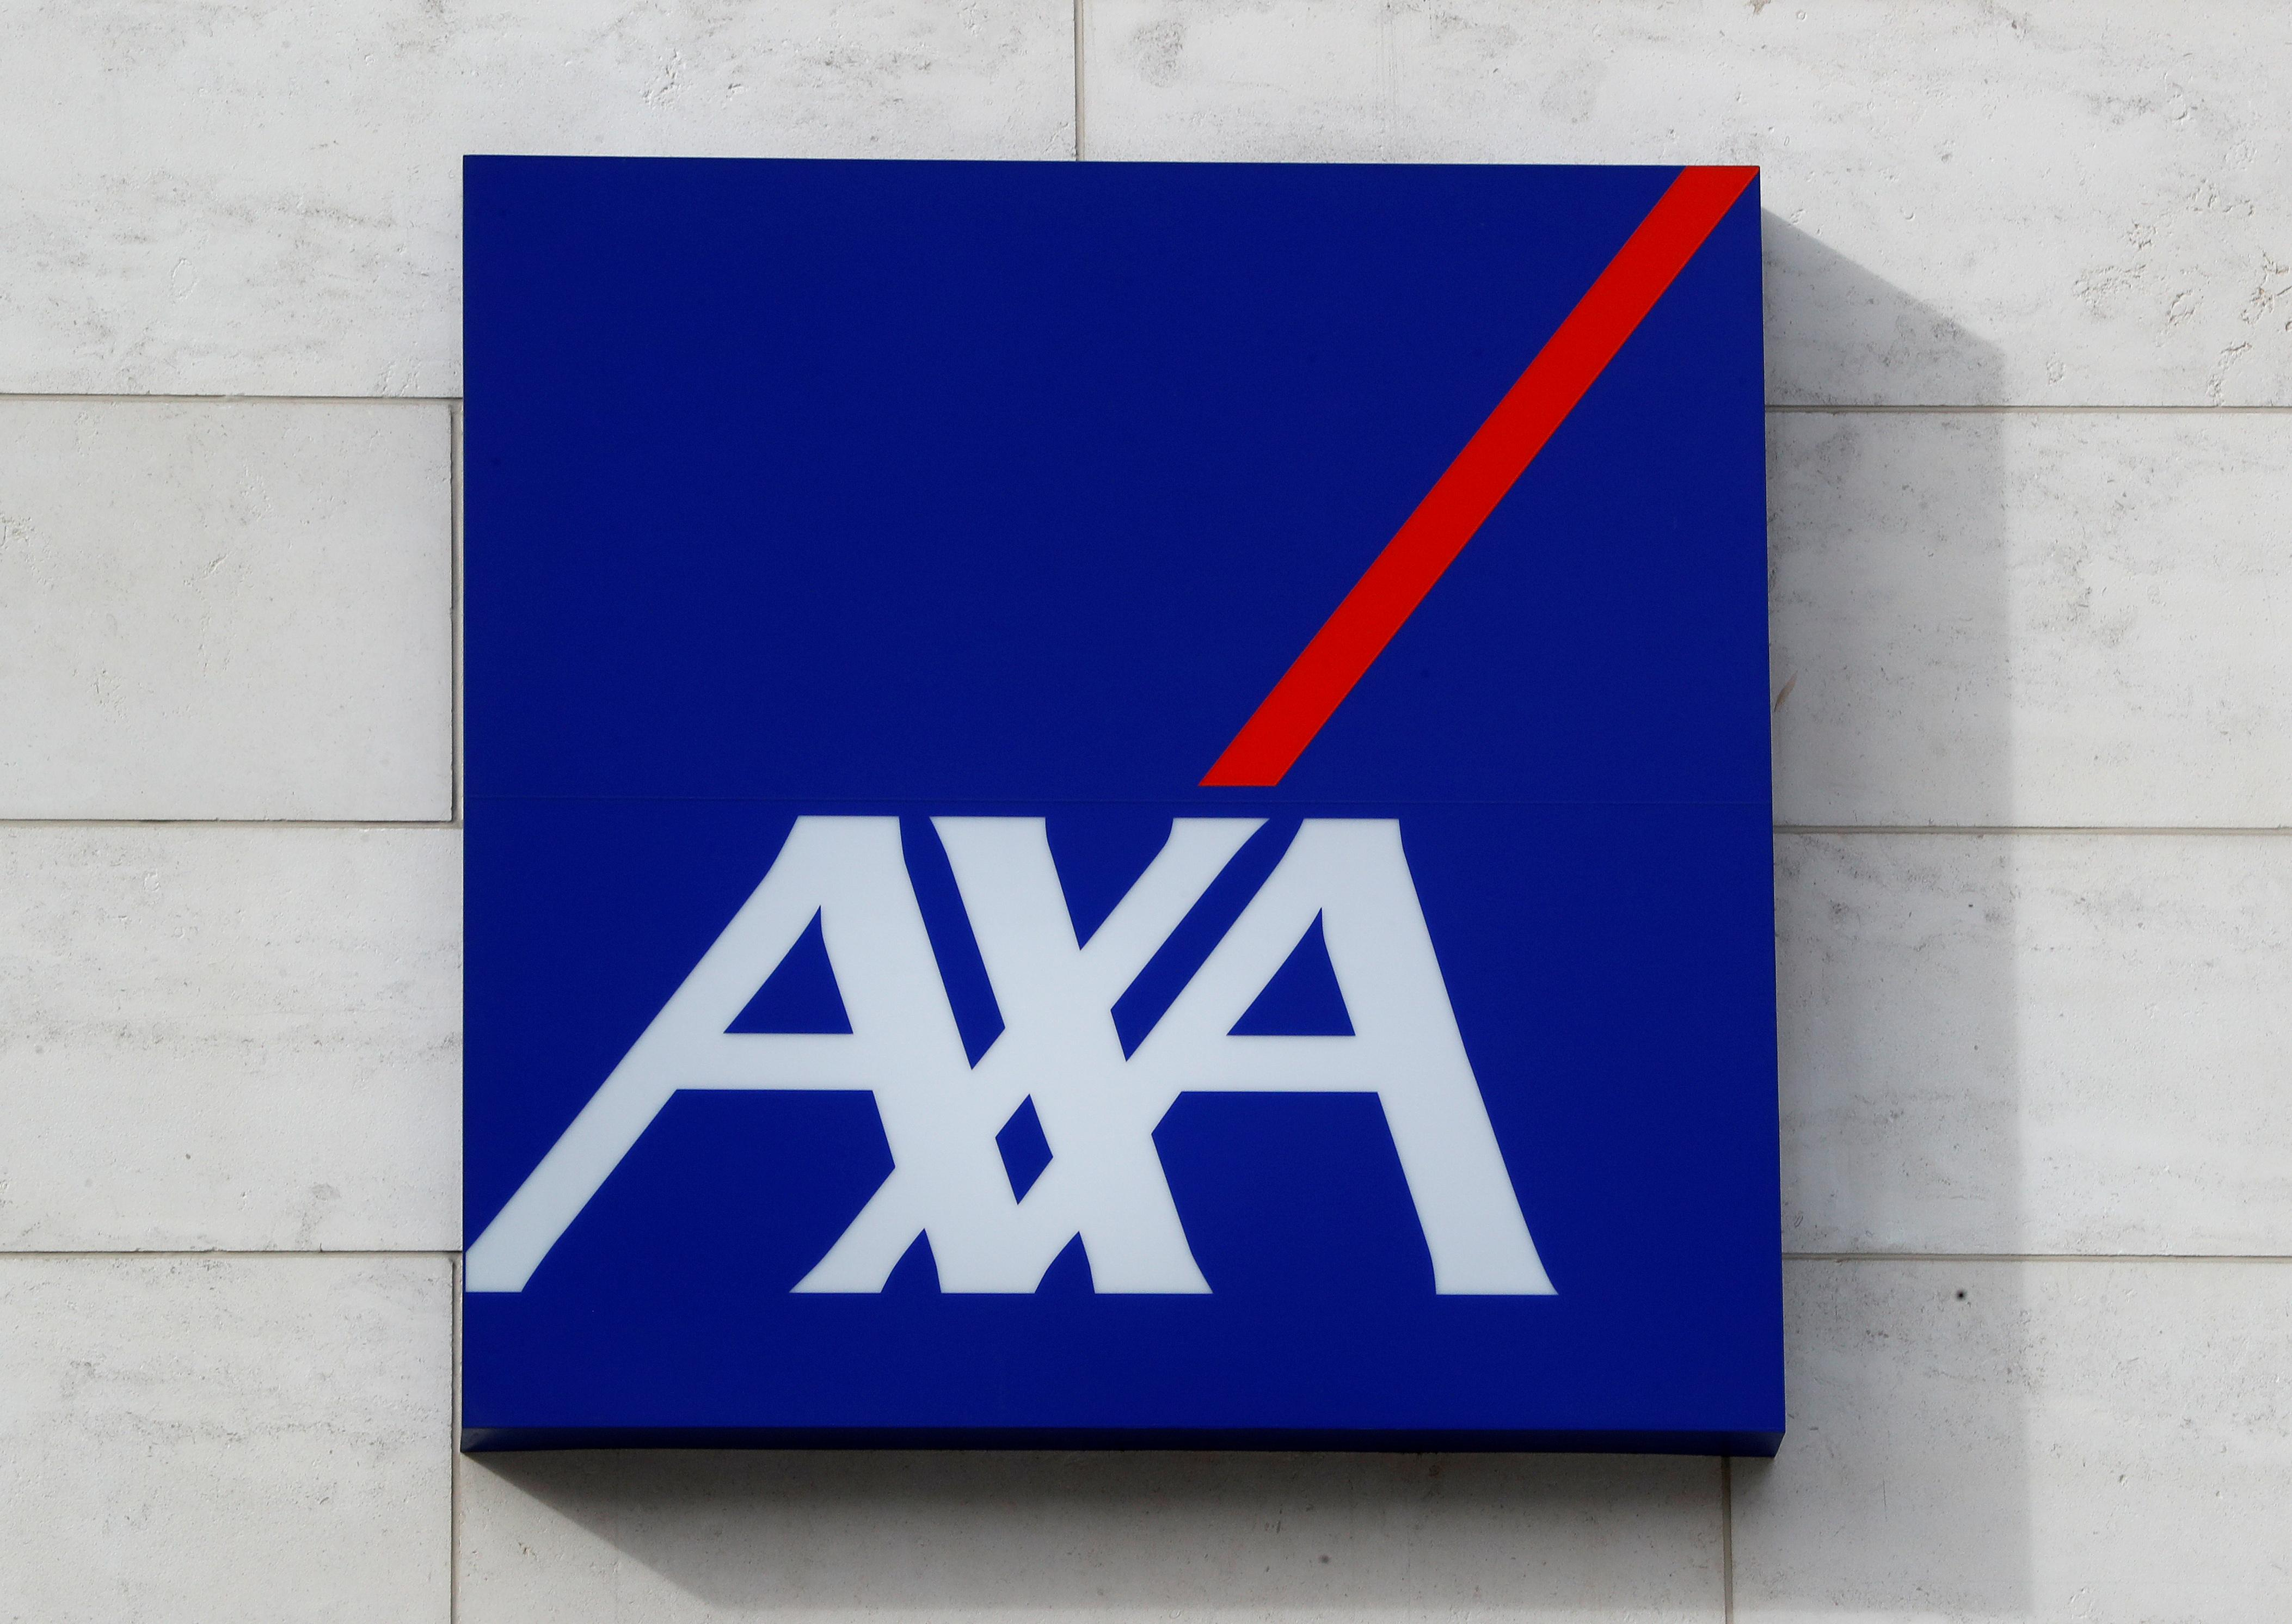 Exclusive: French insurer AXA considers selling up in Central...